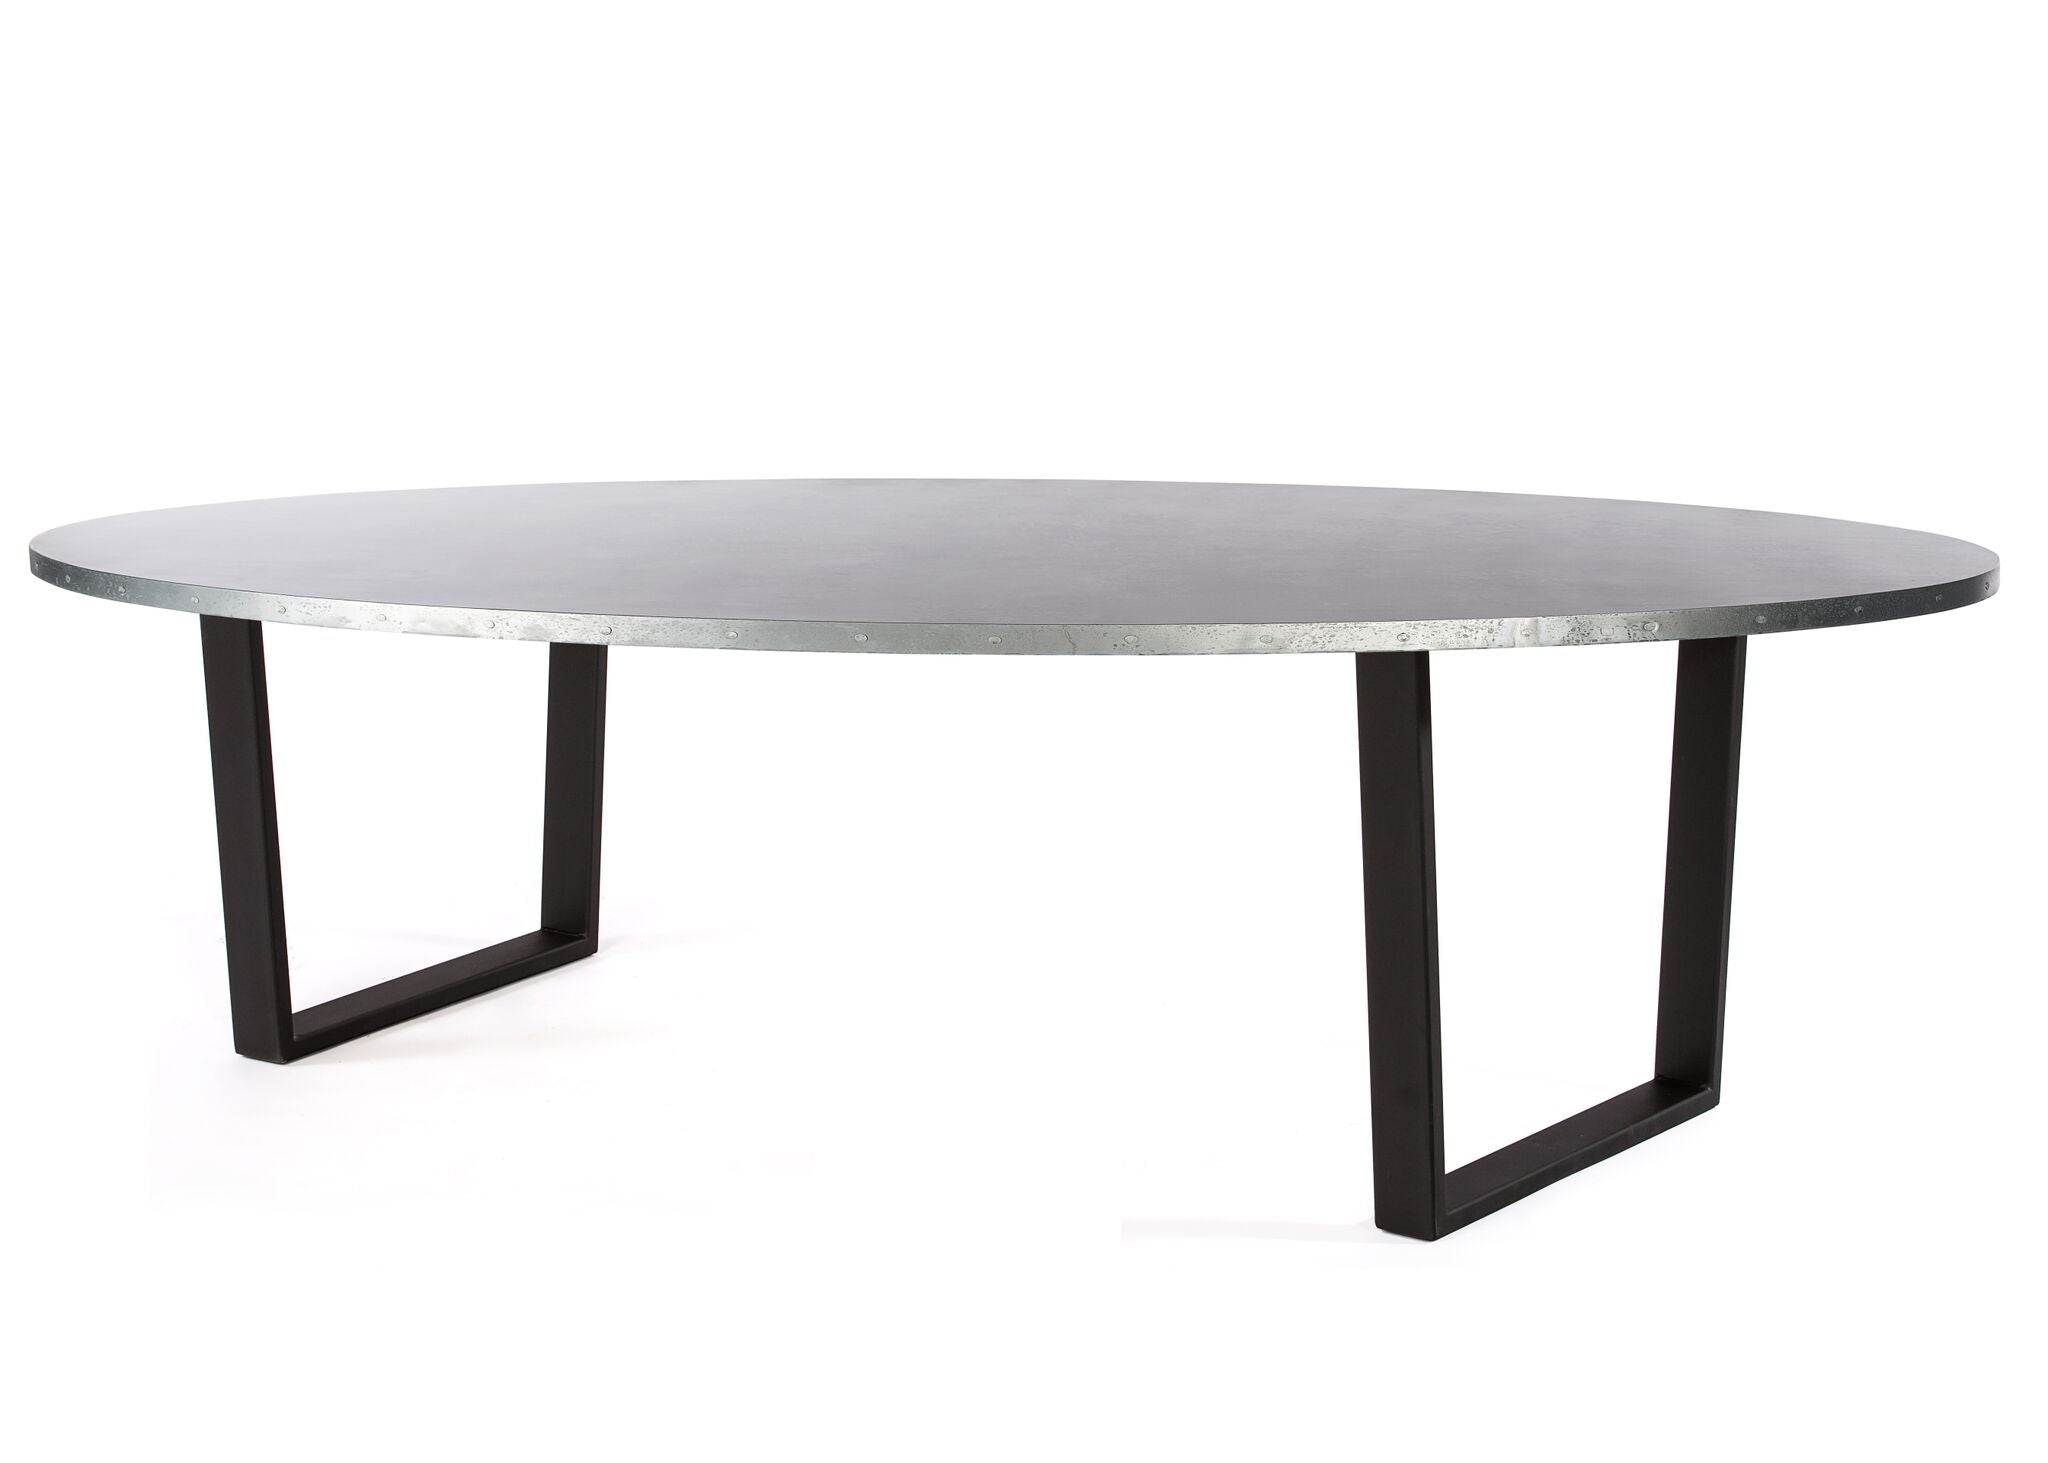 "Zinc Oval Tables | Trenton Table | BLACKENED BRONZE | Dark Black Walnut | CUSTOM SIZE 60""L 37""W 30""H 